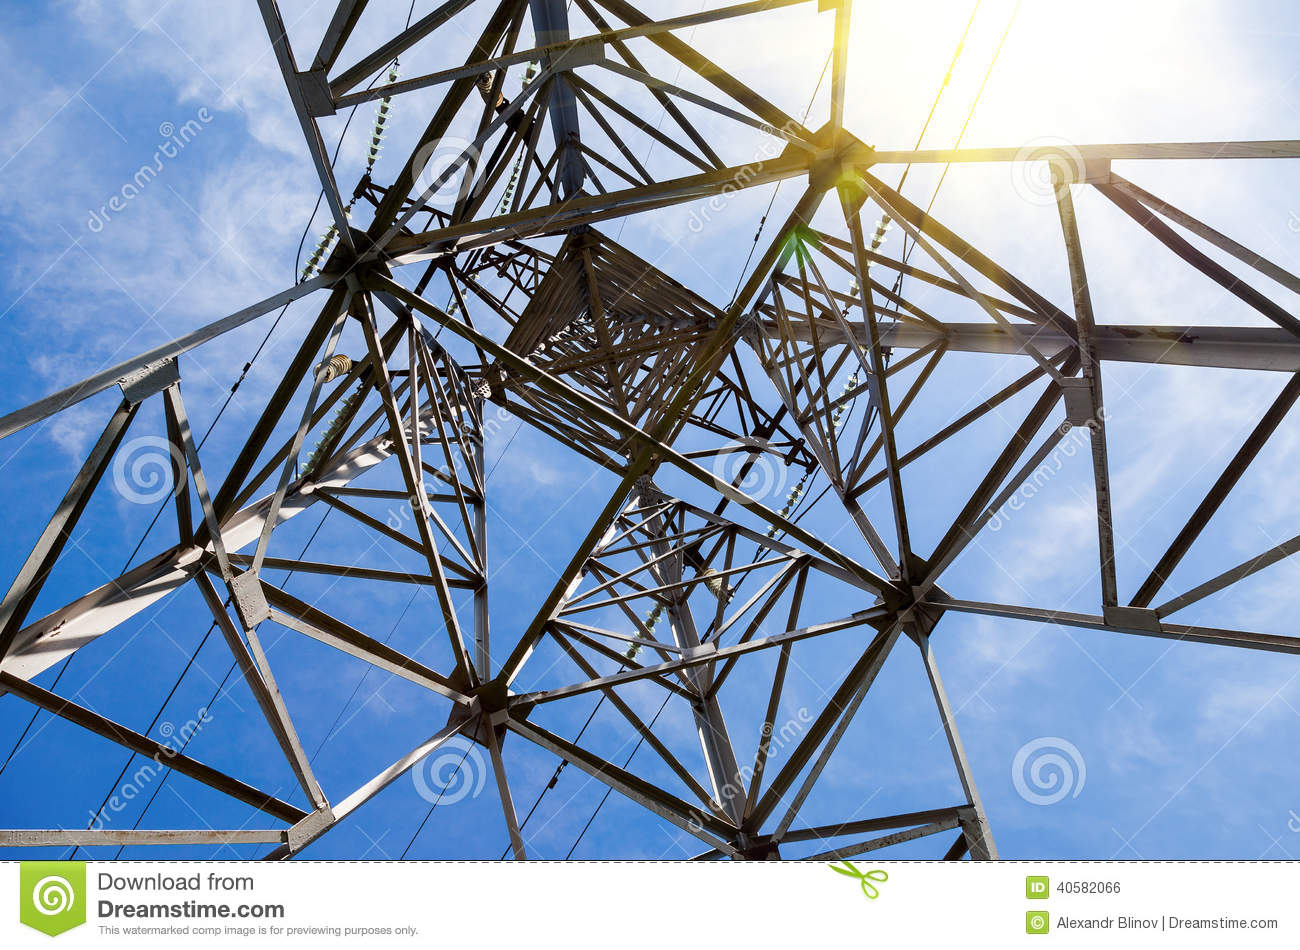 View of the structure under power transmission tower